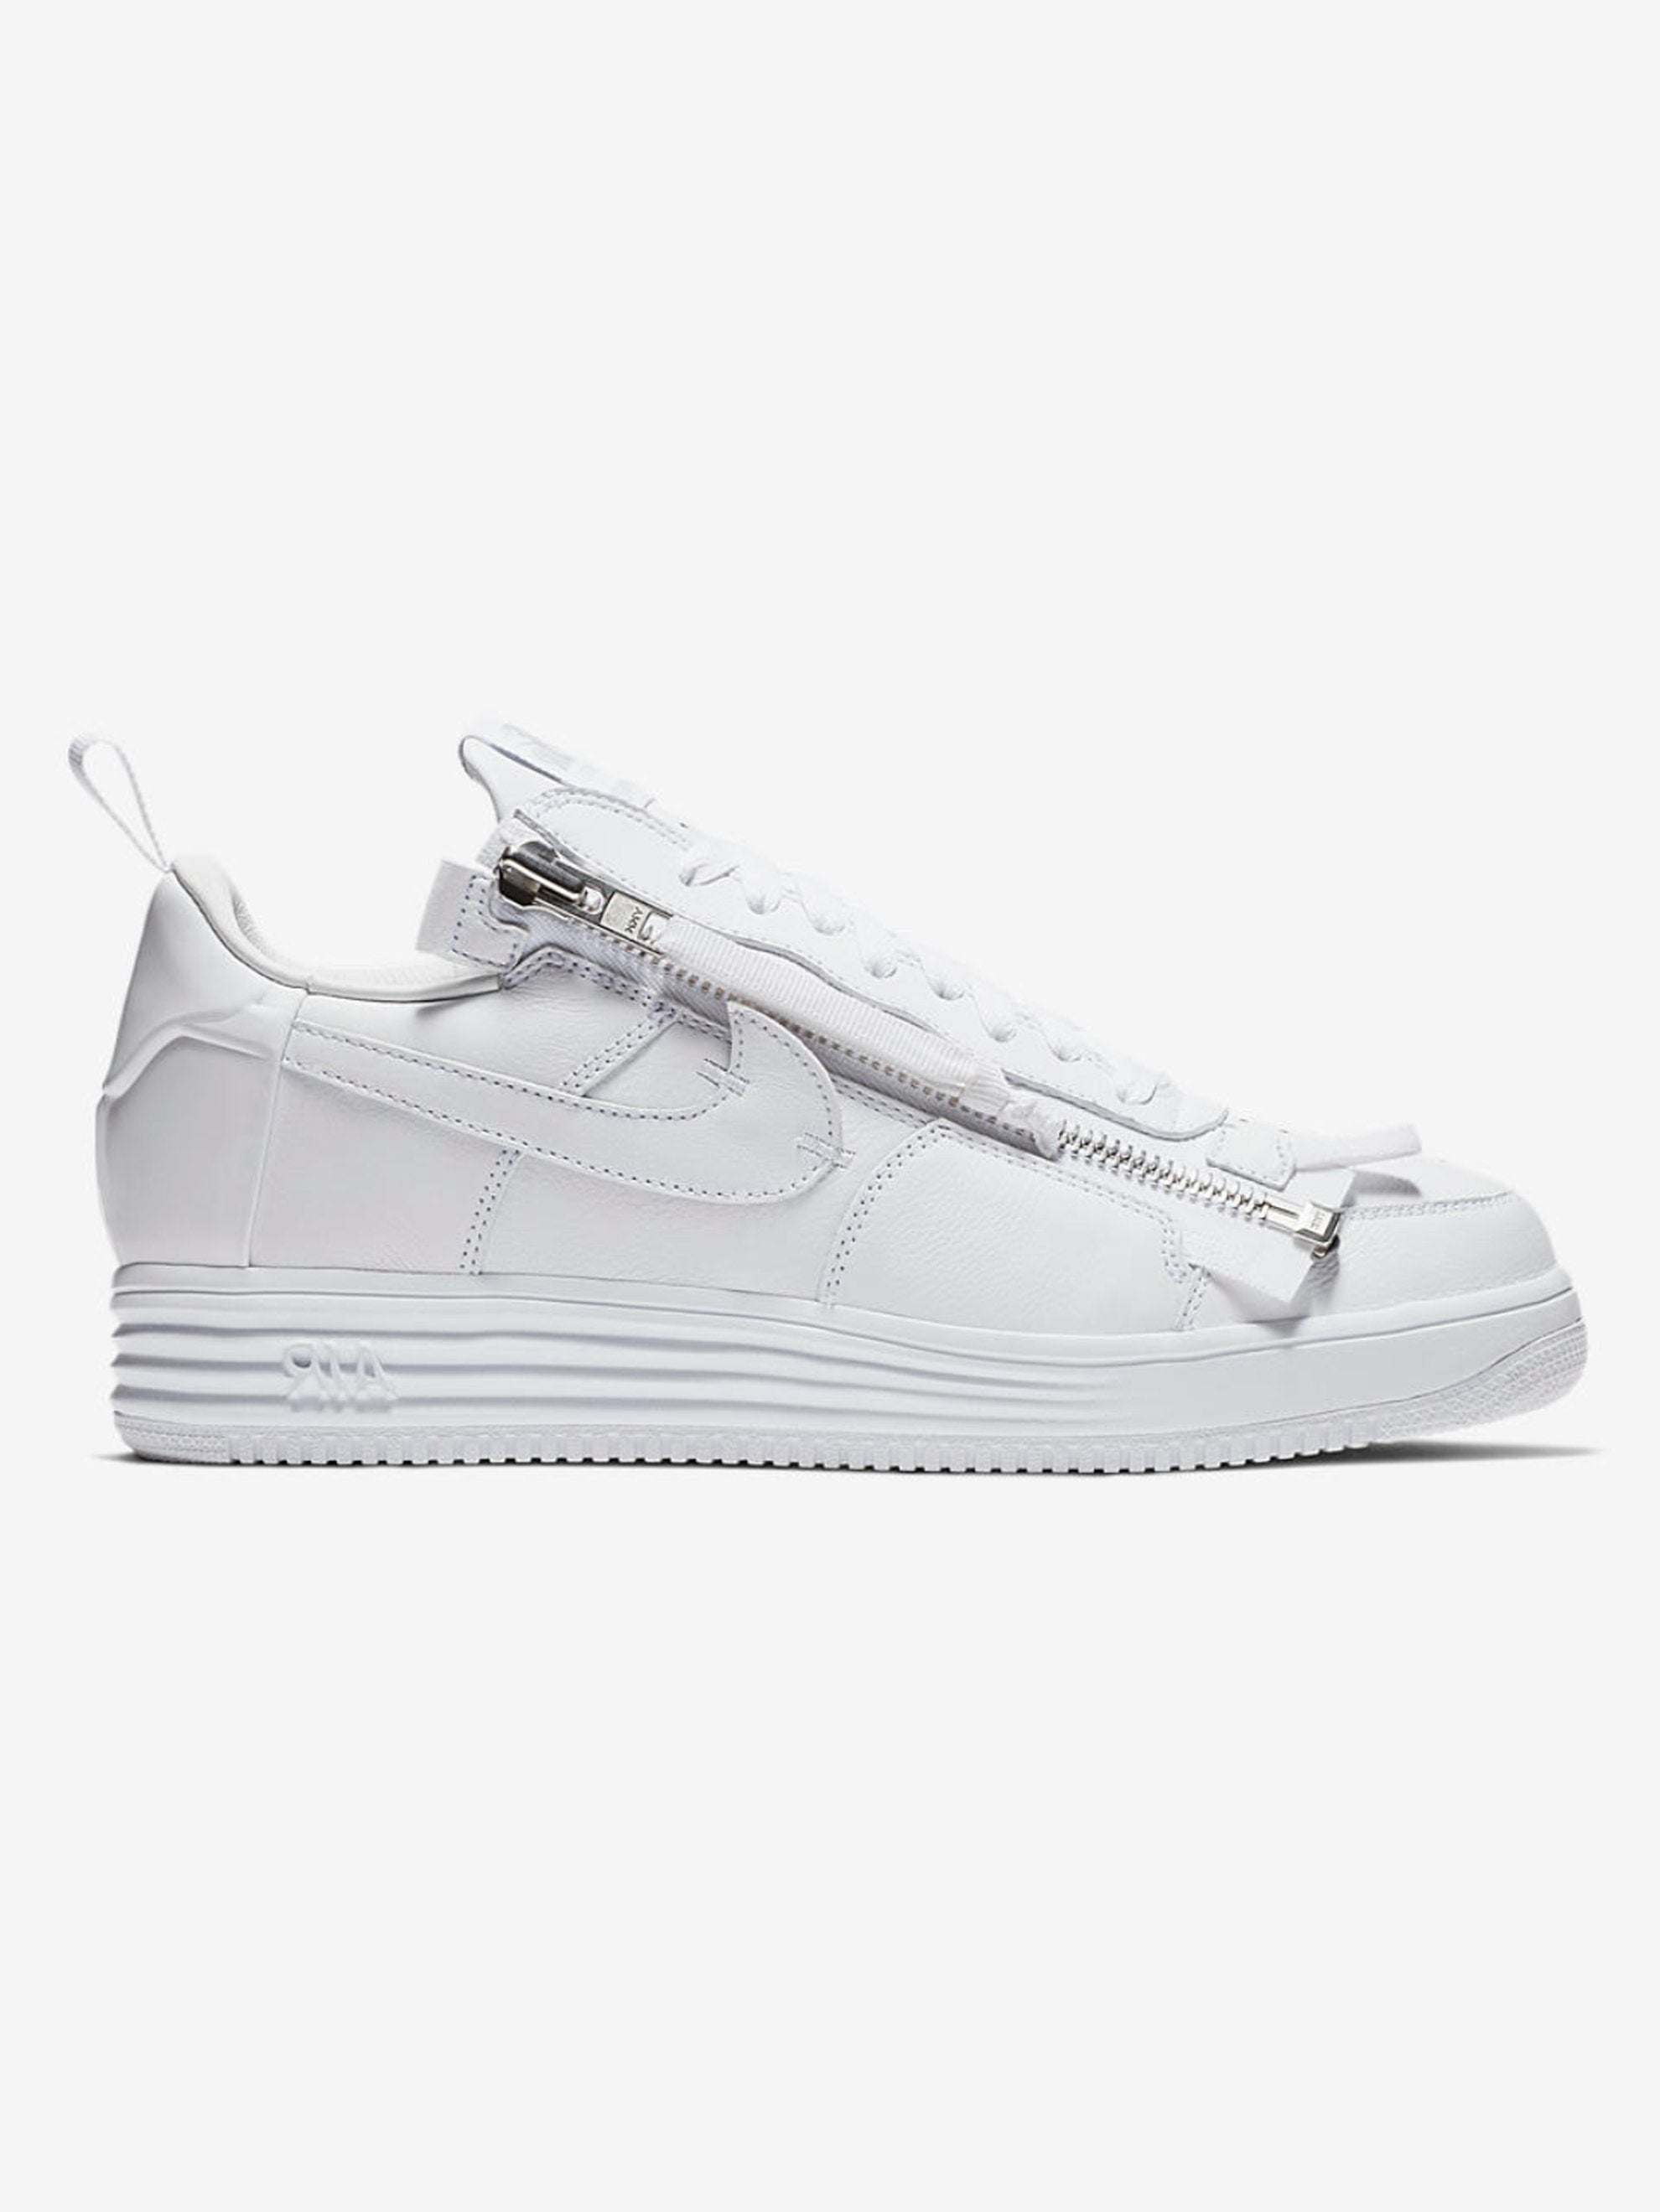 Lunar Force 1 (Acronym)